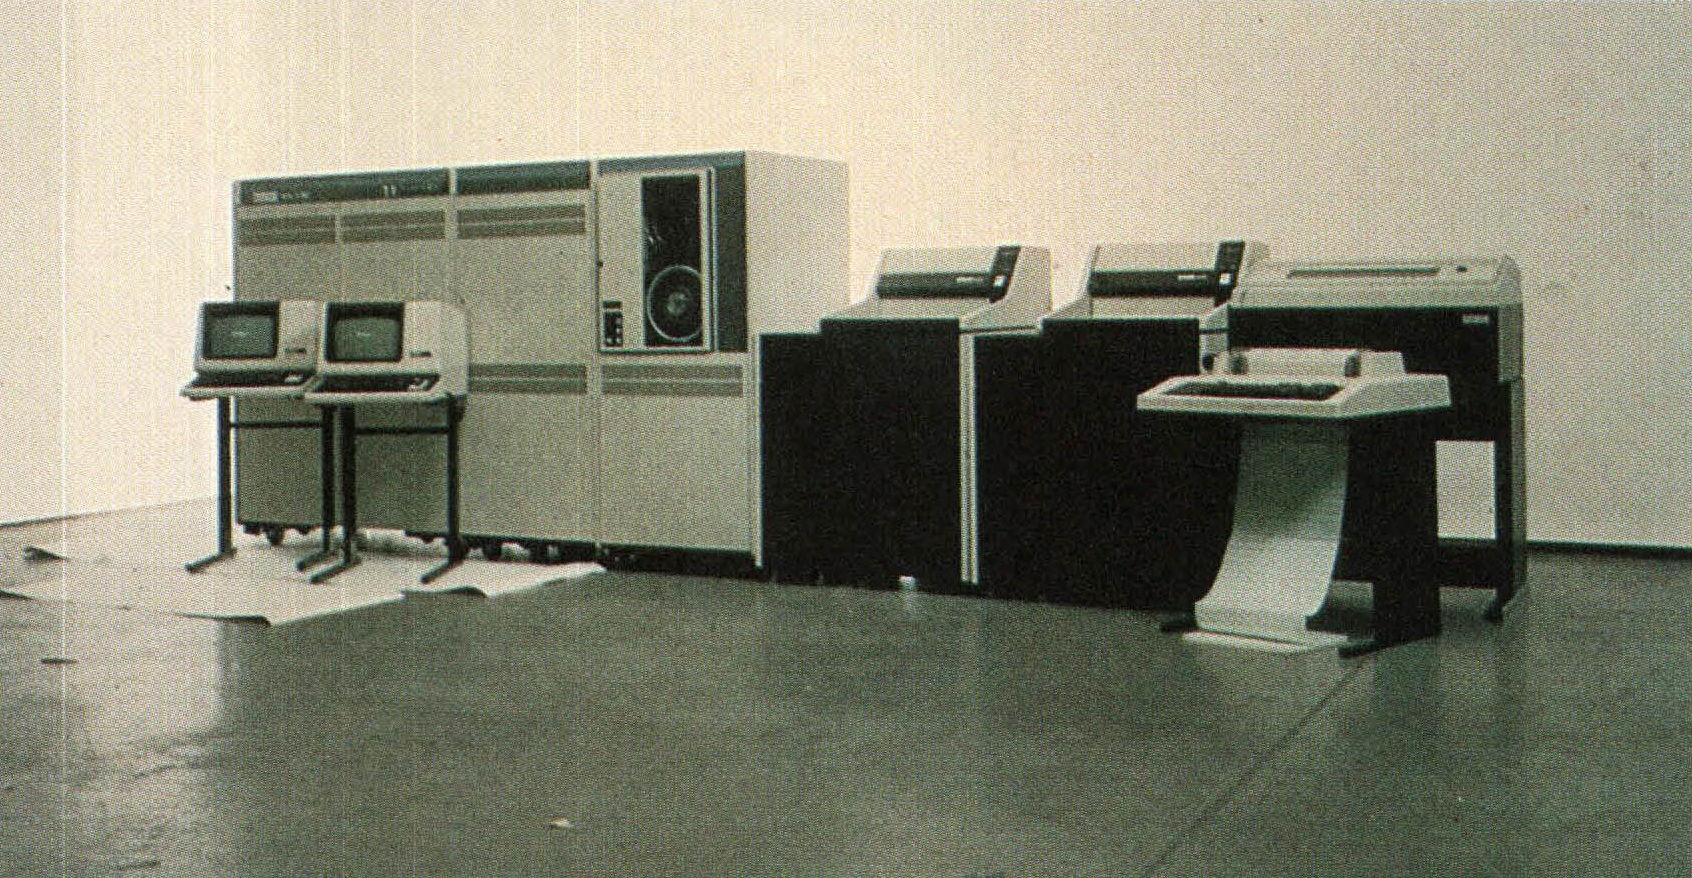 A VAX-ll/780 minicomputer from Digital. The VAX, or virtual address extension, series of 32-bit minicomputers was one of the most popular and versatile minis in the world. Photo via creative commons license from Harvard.